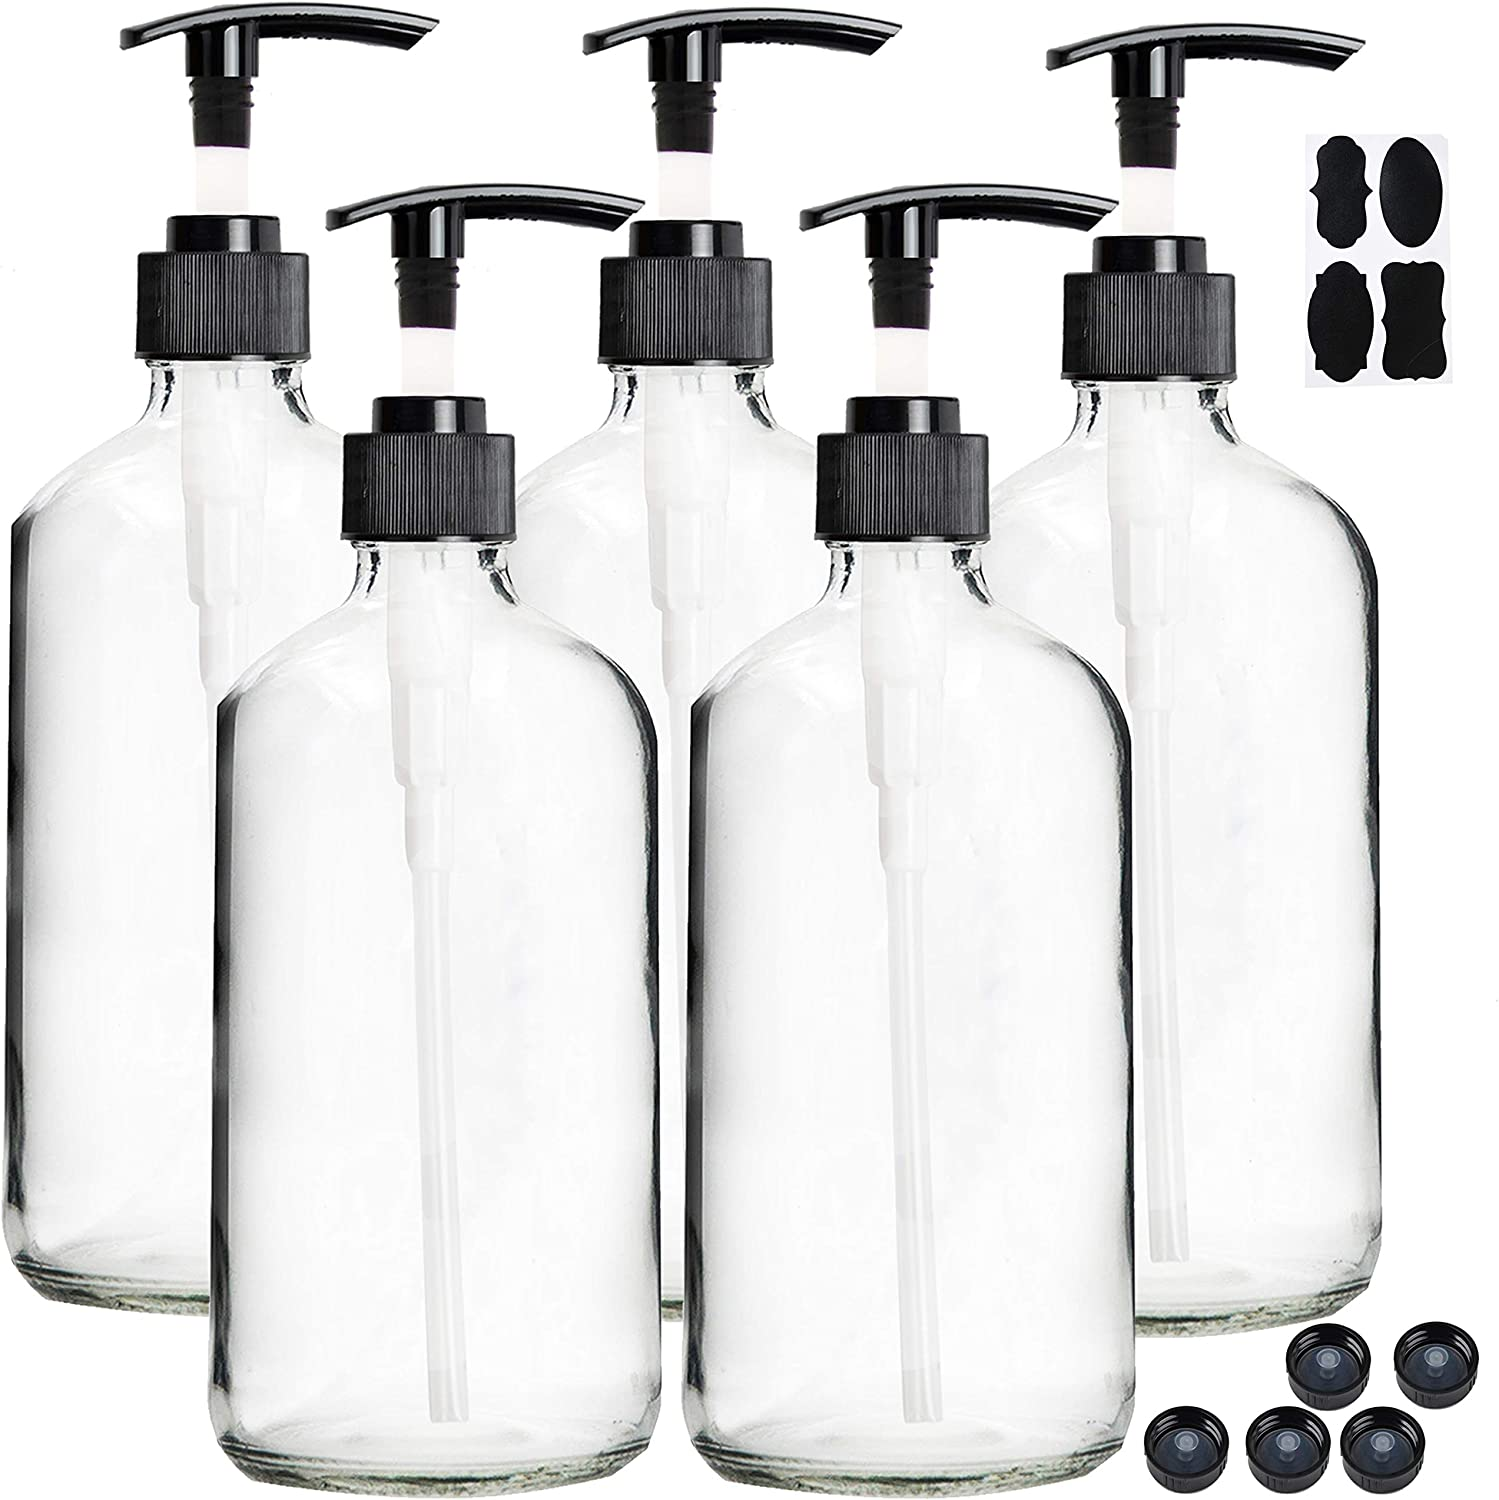 Youngever 5 Pack Empty Clear Glass Pump Bottles, 8 Ounce Lotion Pump Bottles, Soap Dispenser, Refillable Containers, Durable Black Pumps